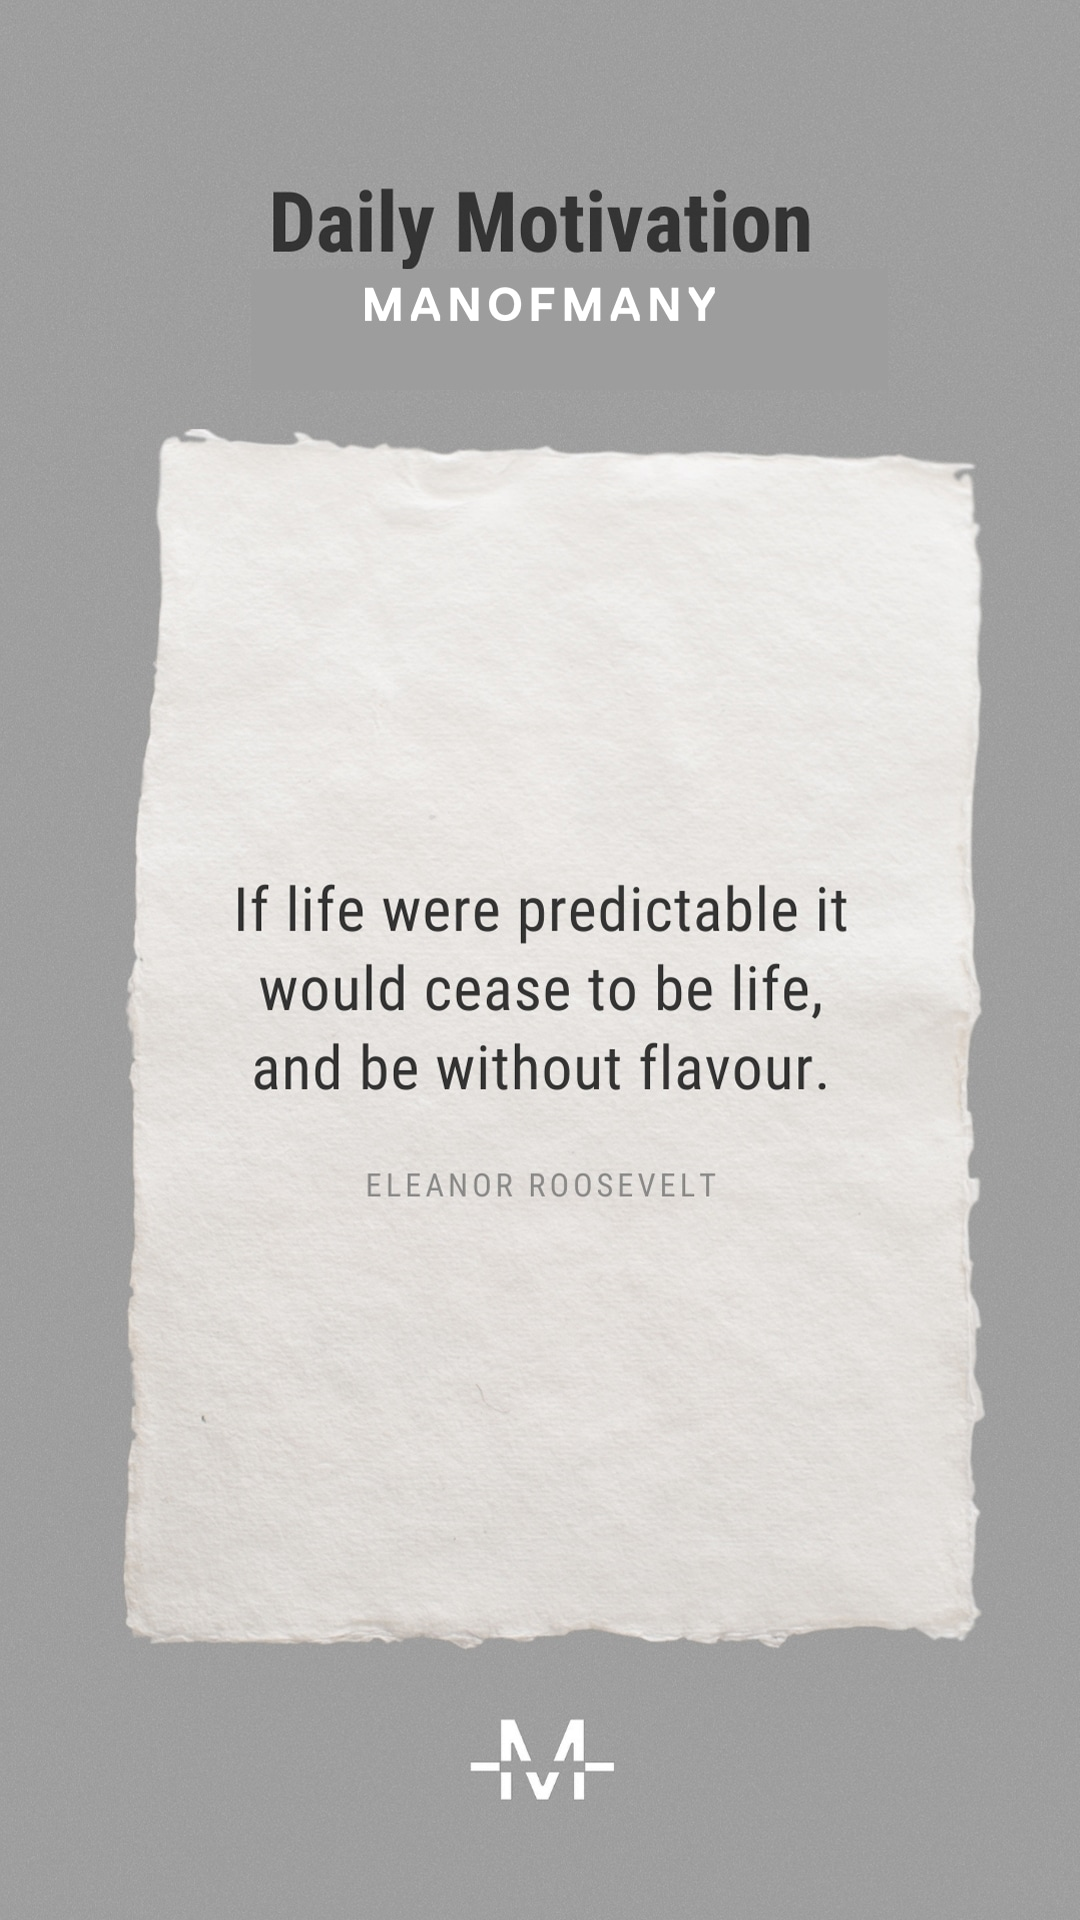 If life were predictable it would cease to be life, and be without flavor. – Eleanor Roosevelt quote